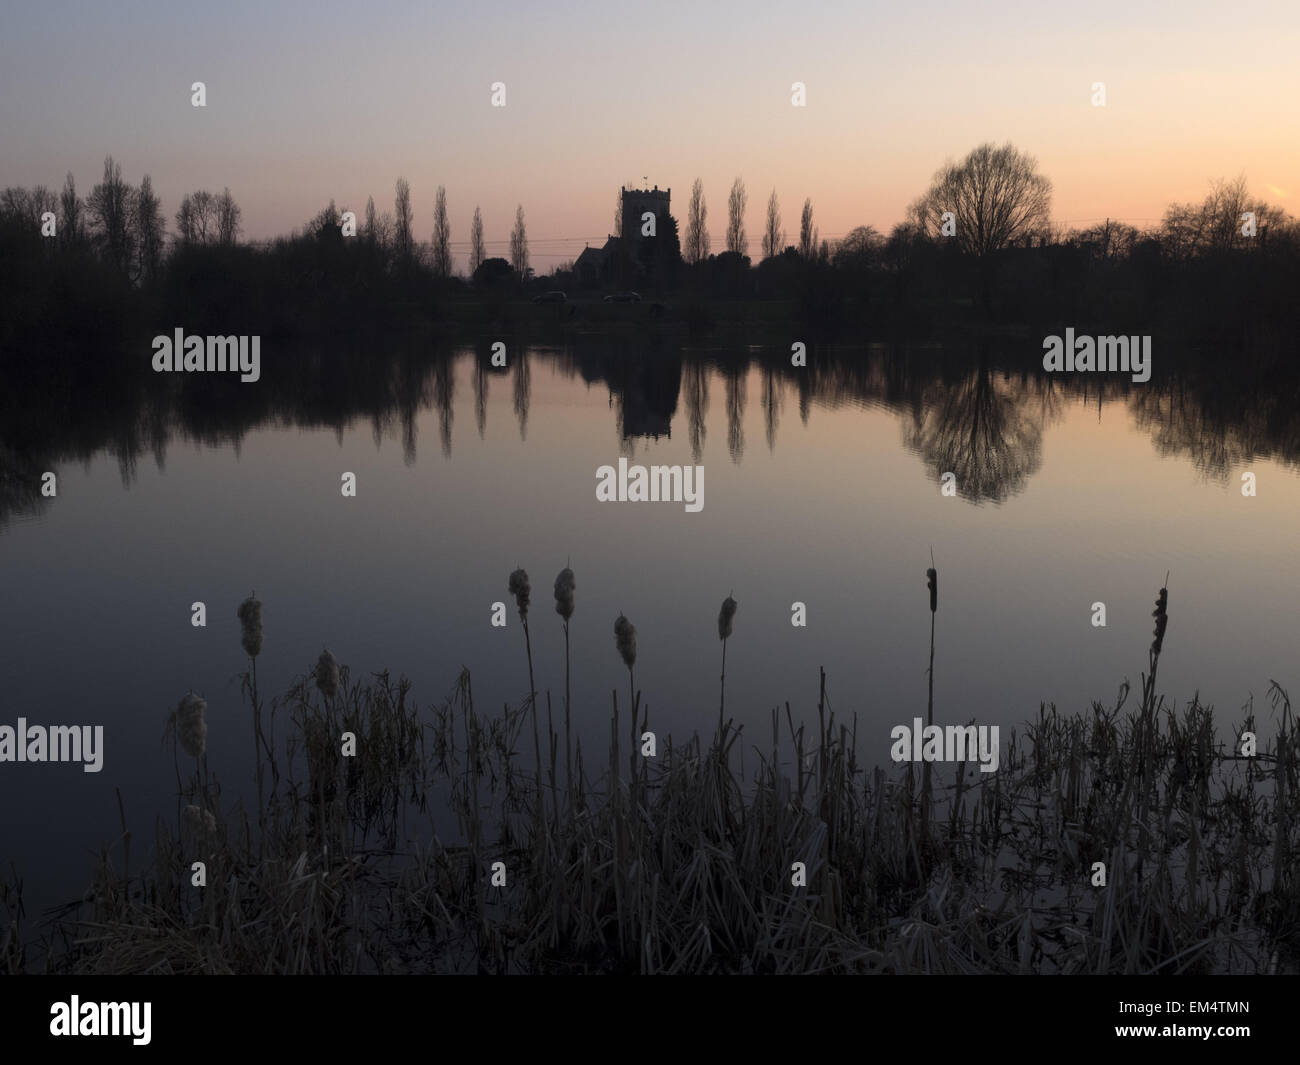 The parish church of Saint Wilfrid in South Muskham Nottinghamshire reflected in the waters of a nearby lake. - Stock Image